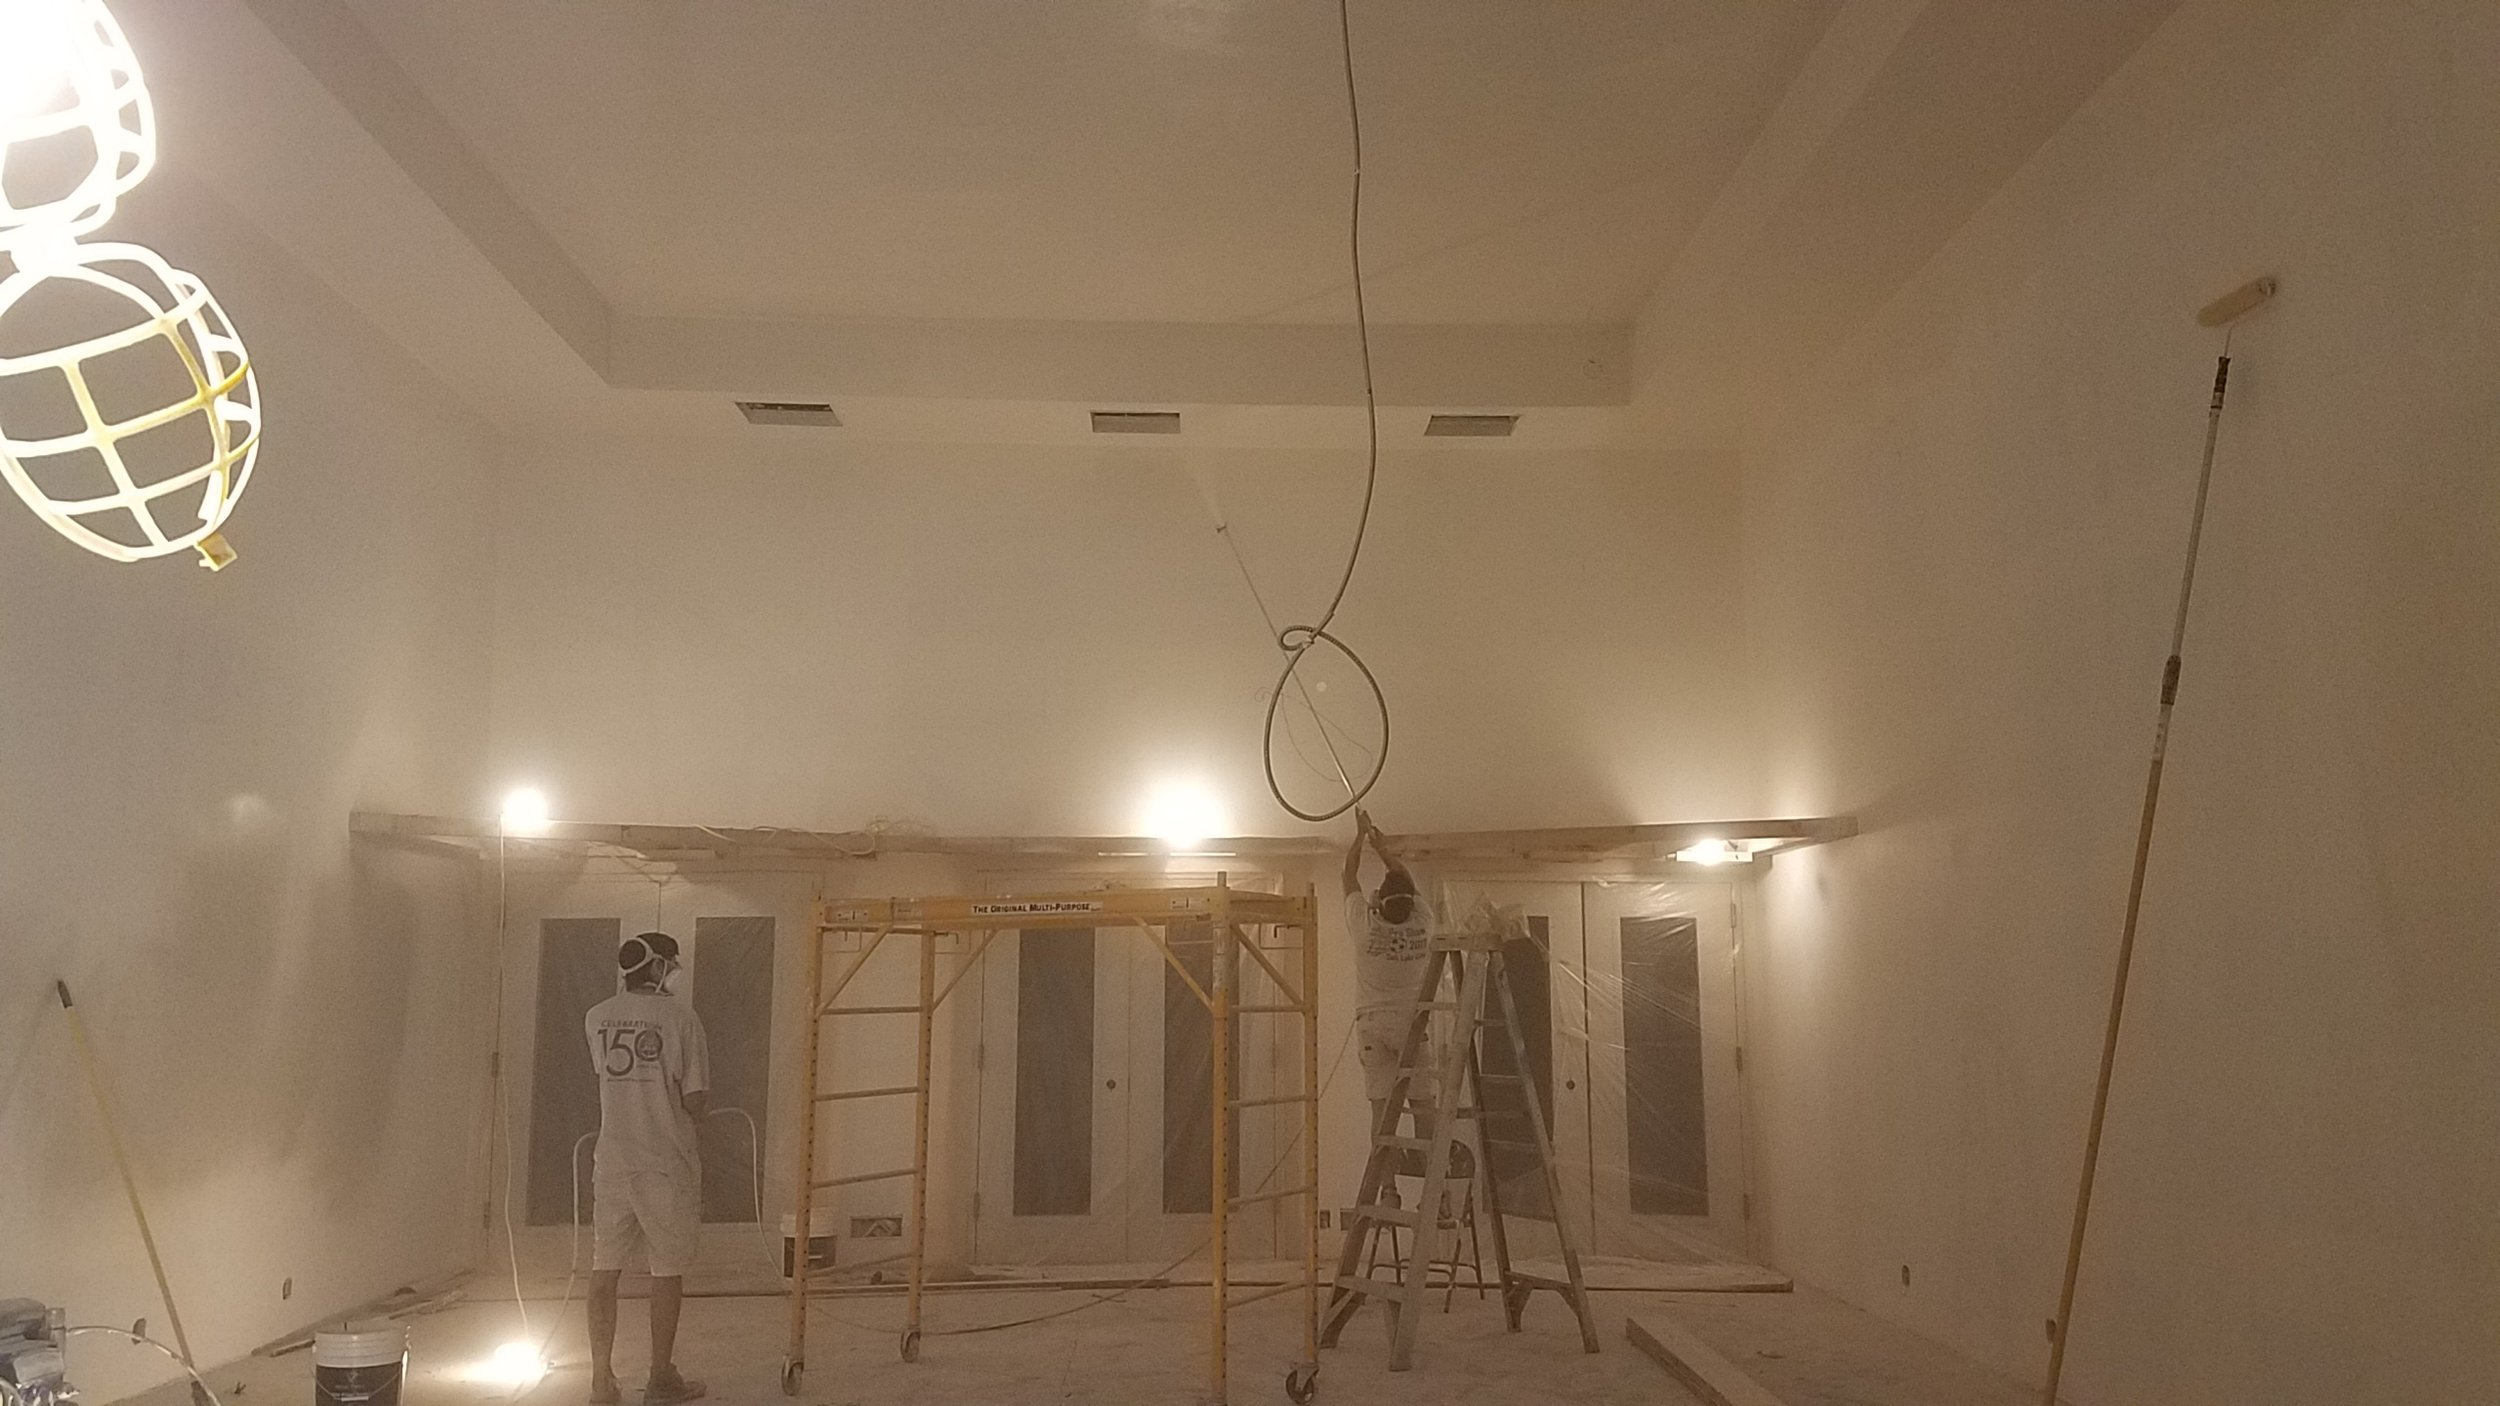 Doors are taped up and now painting the walls and ceiling begins.